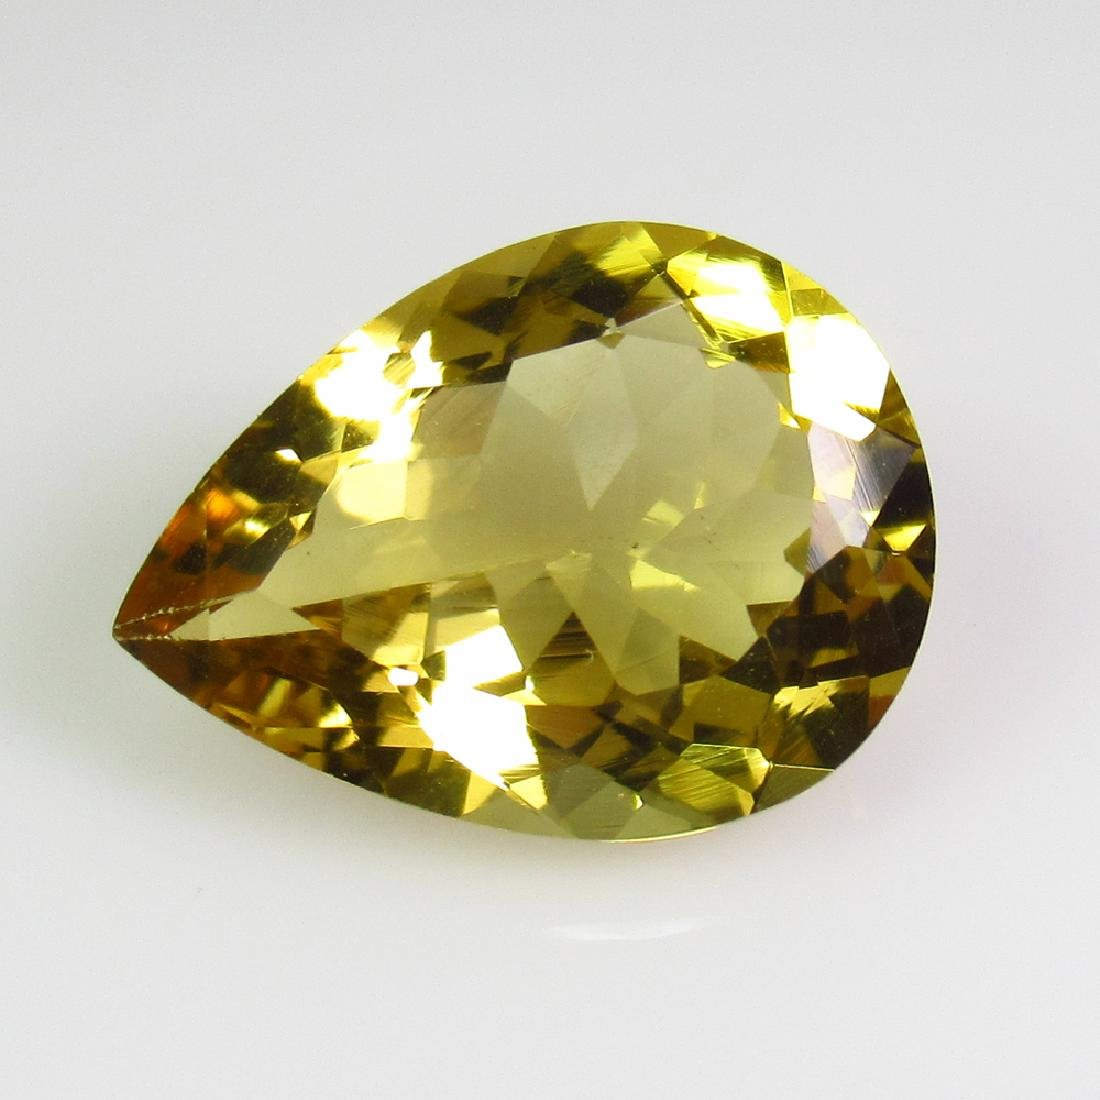 6.80 Ct Genuine Madeira Brandy Yellow Citrine Pear